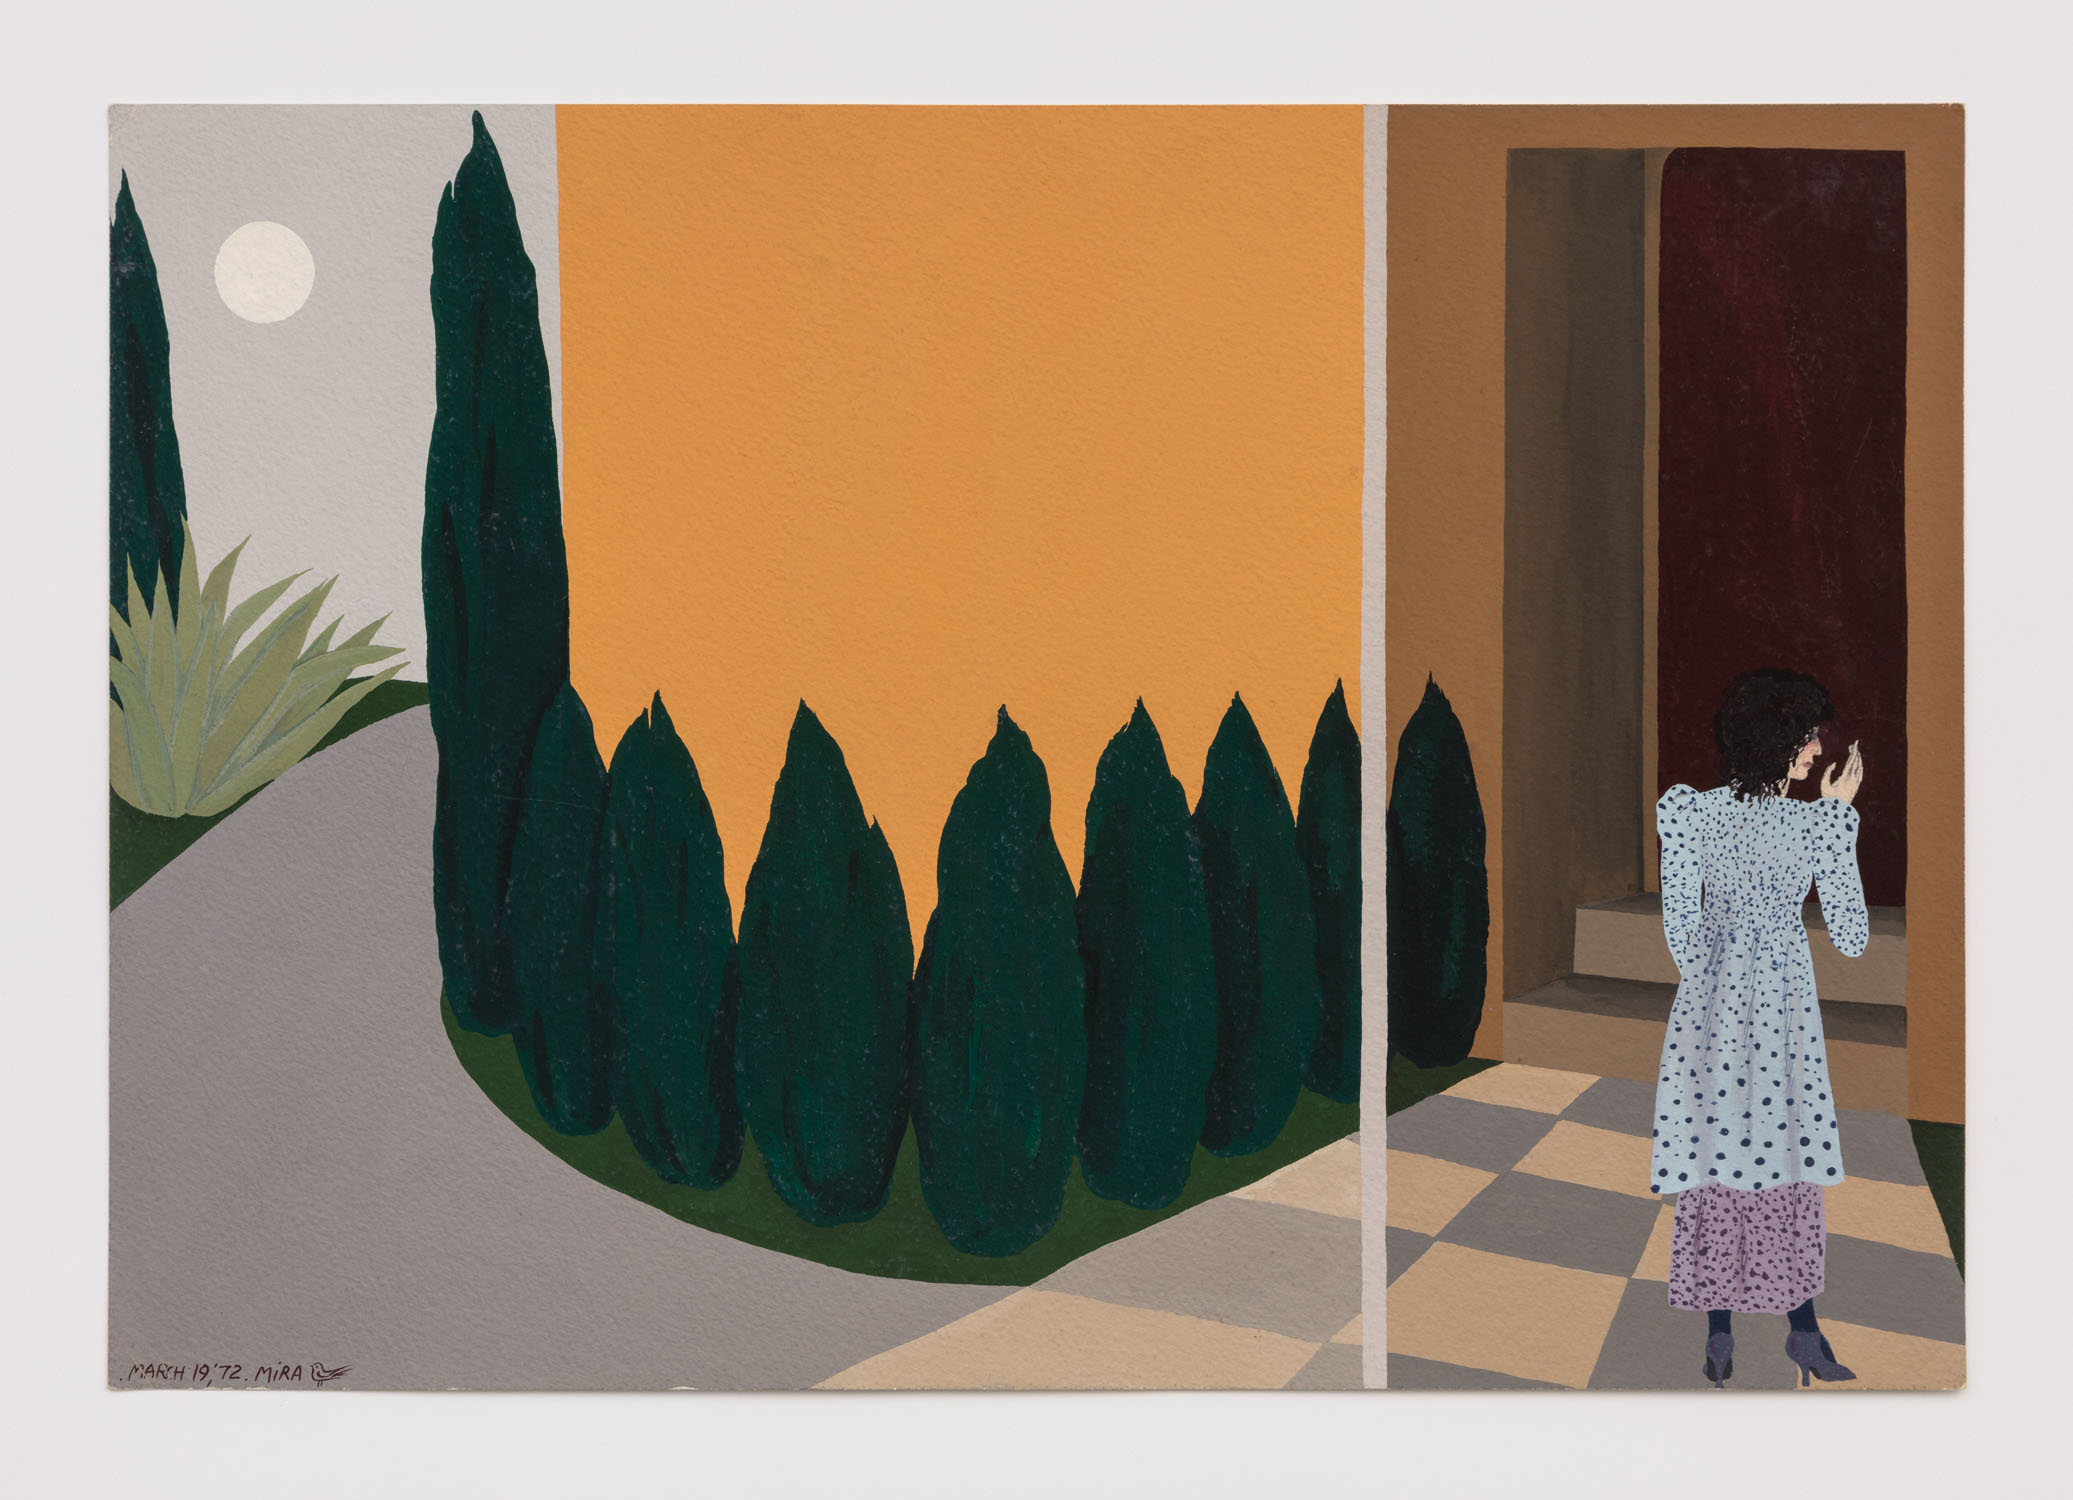 Mira Schor   California , March 19, 1972  Gouache and metallic ink on paper  13.5 x 19.75 inches